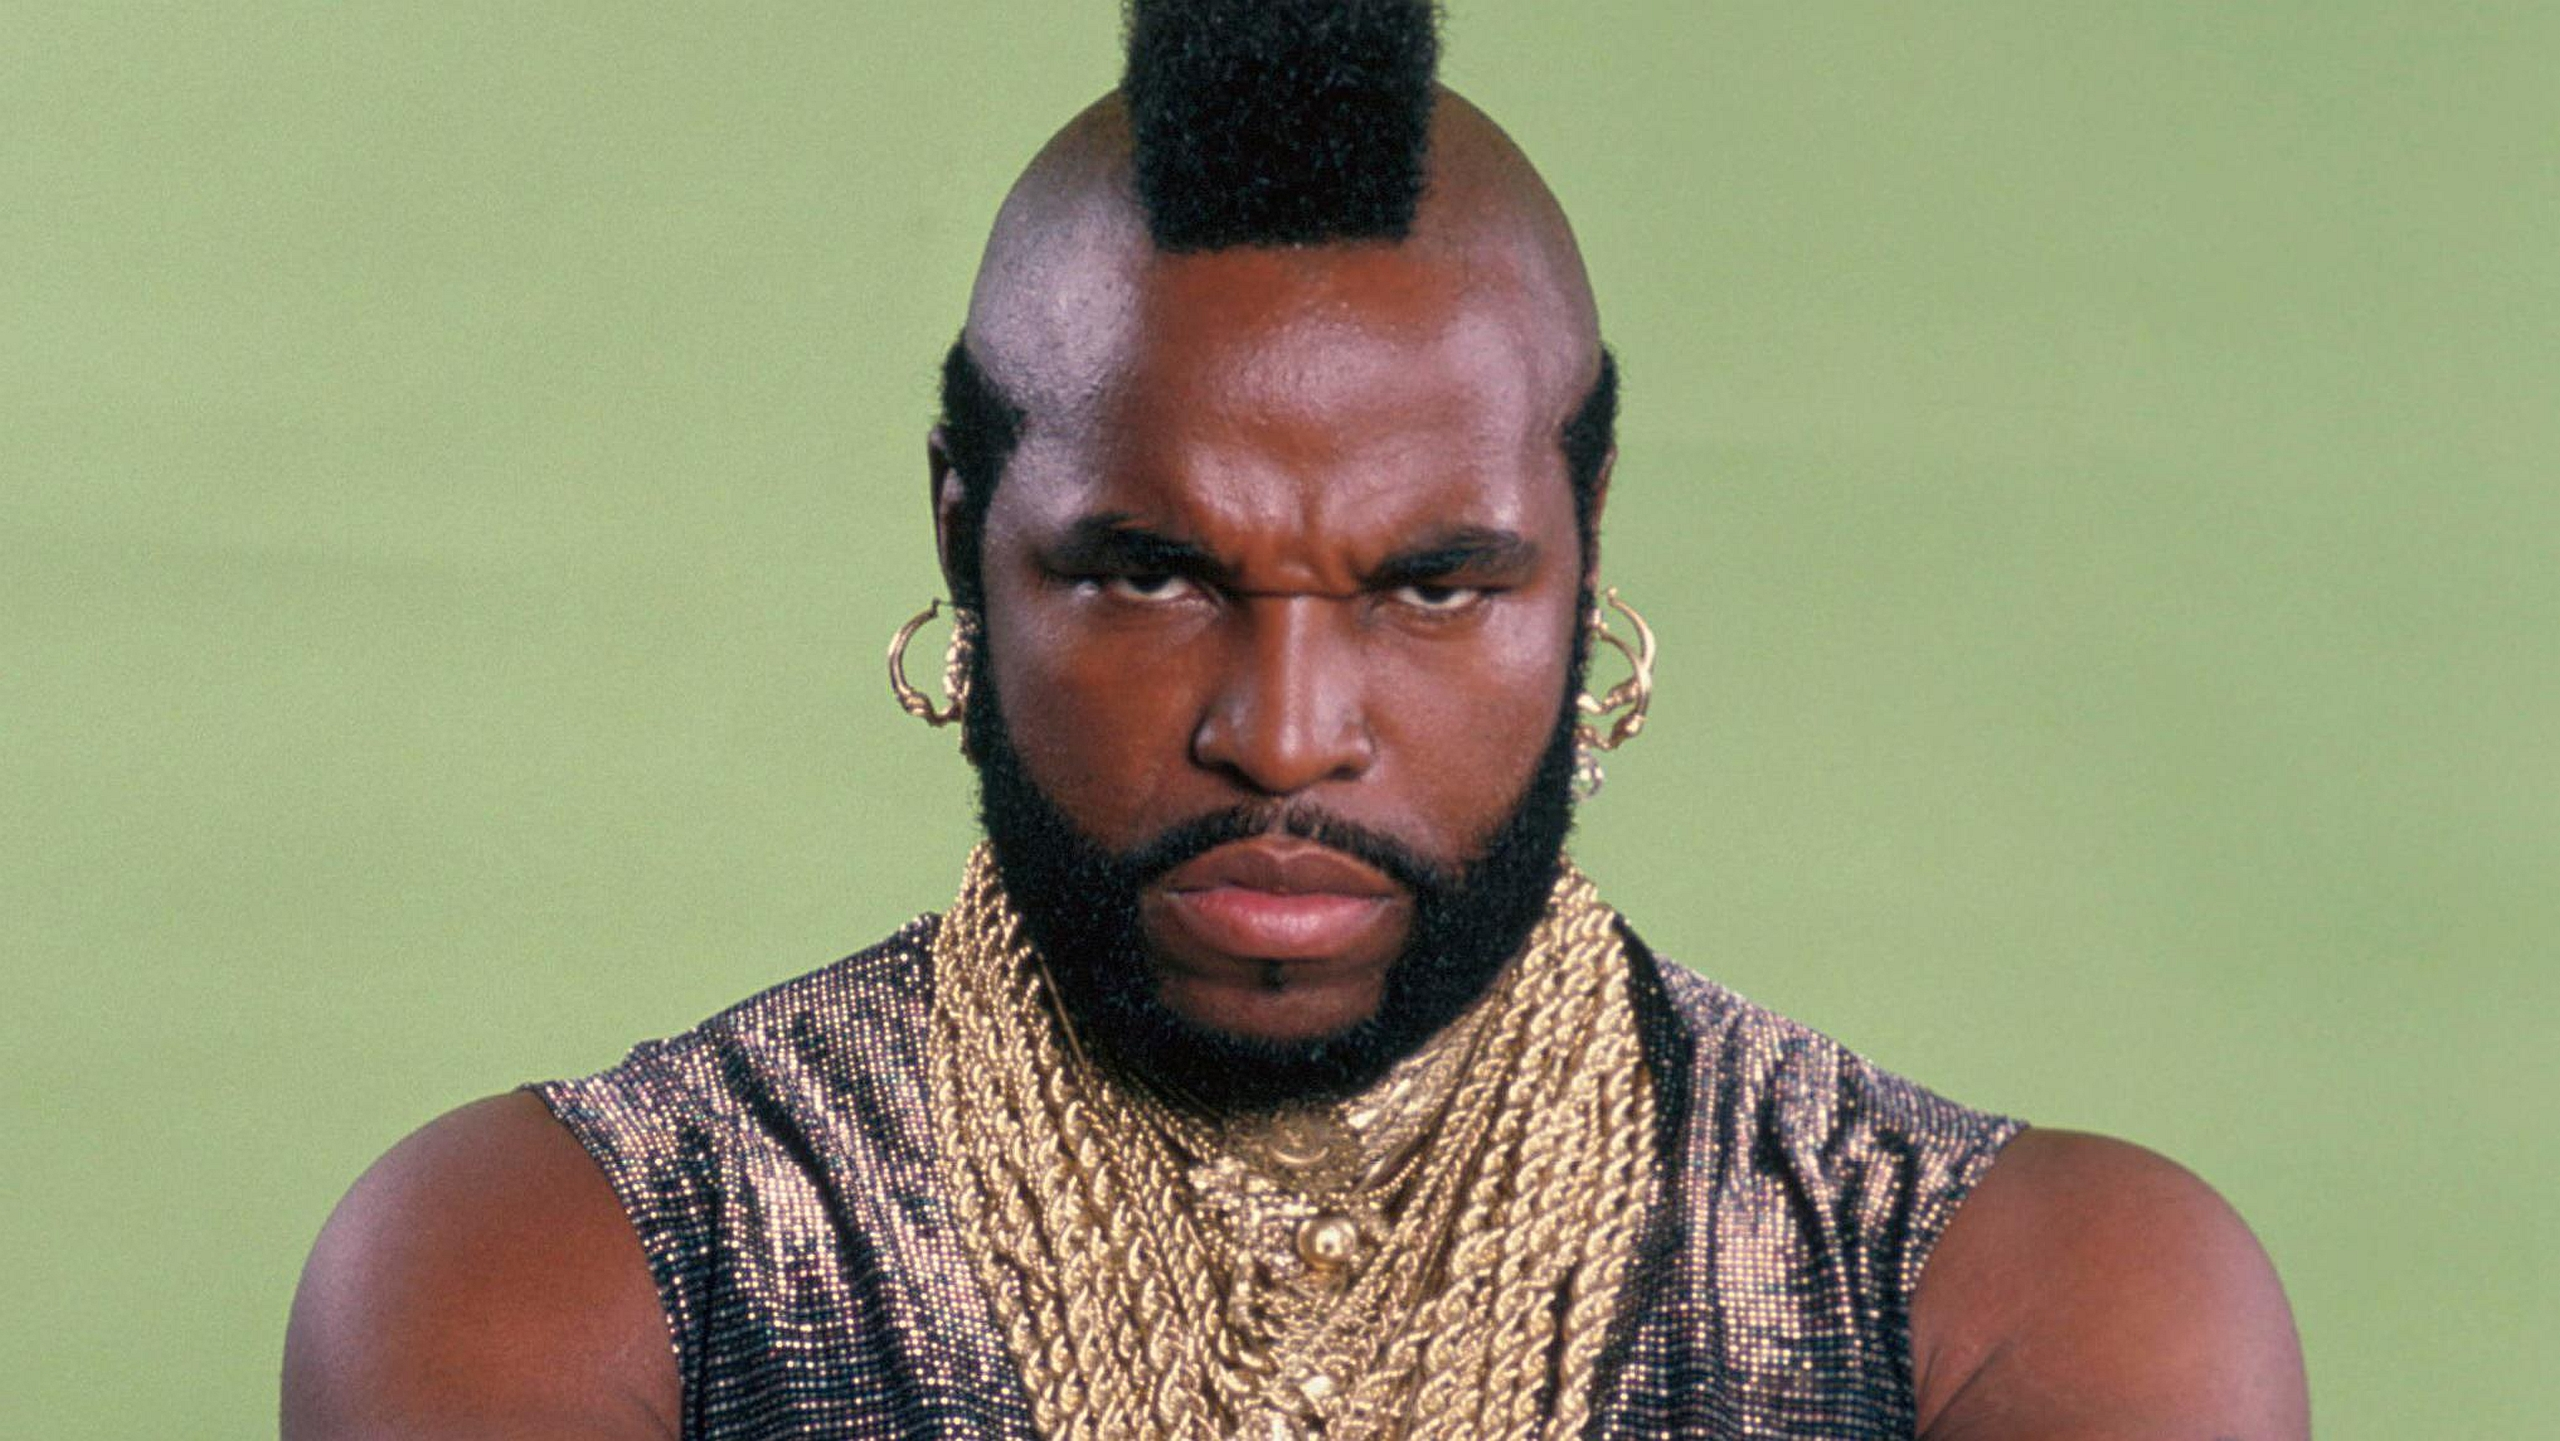 2560x1441 - Mr. T Wallpapers 1